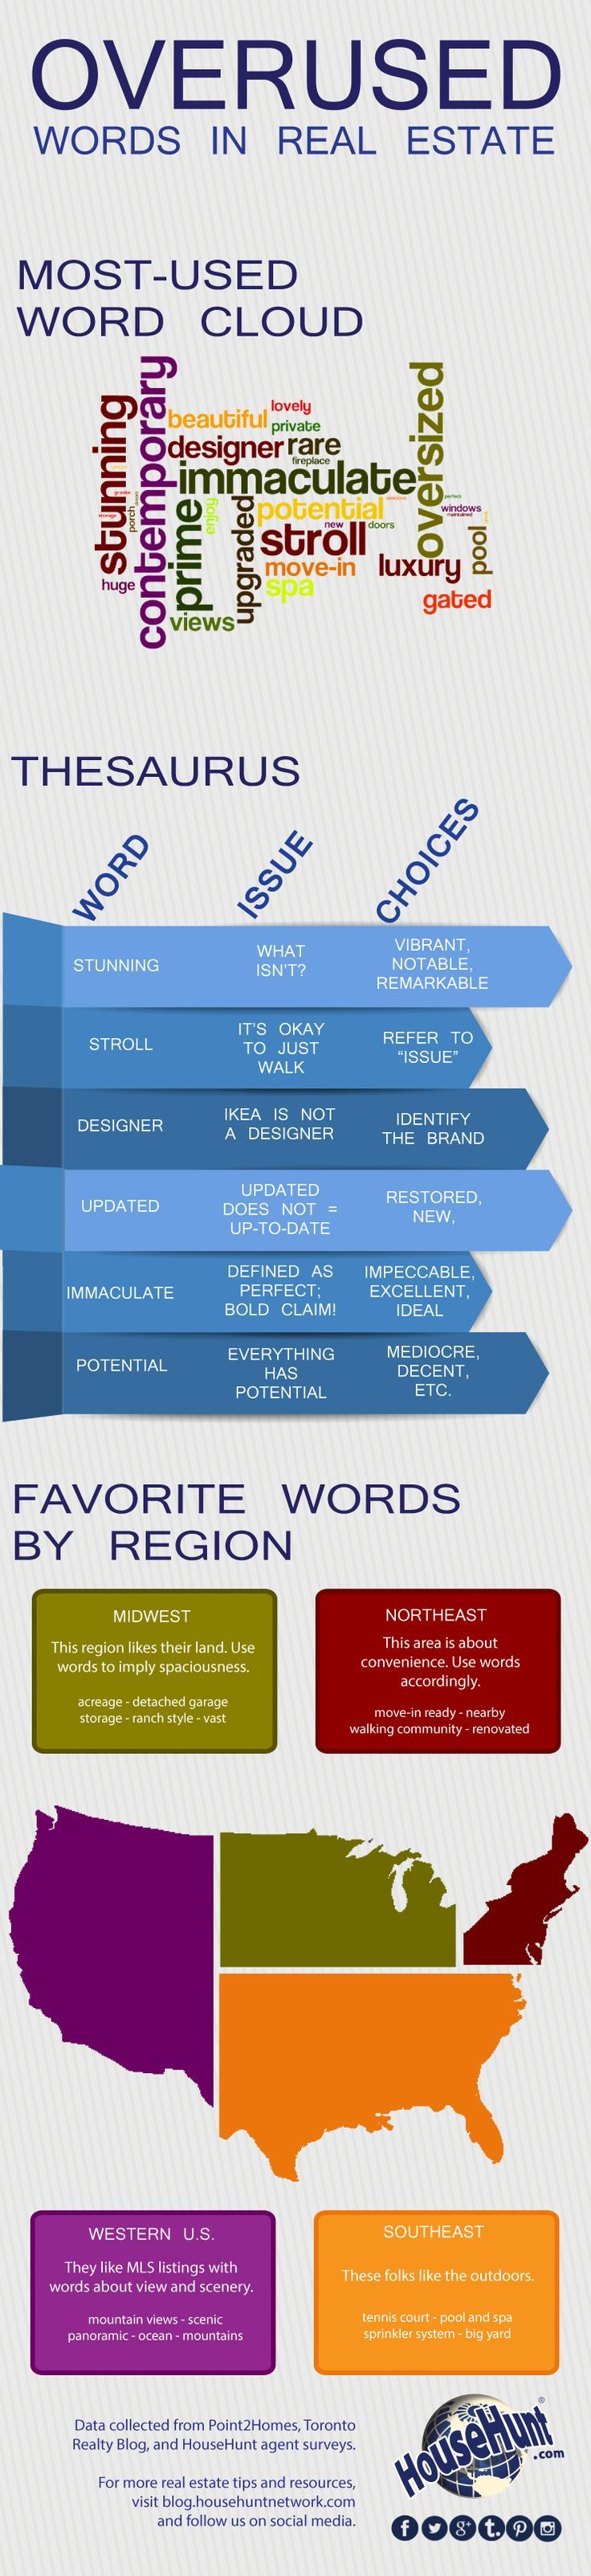 Overused Words in Real Estate #Infographic